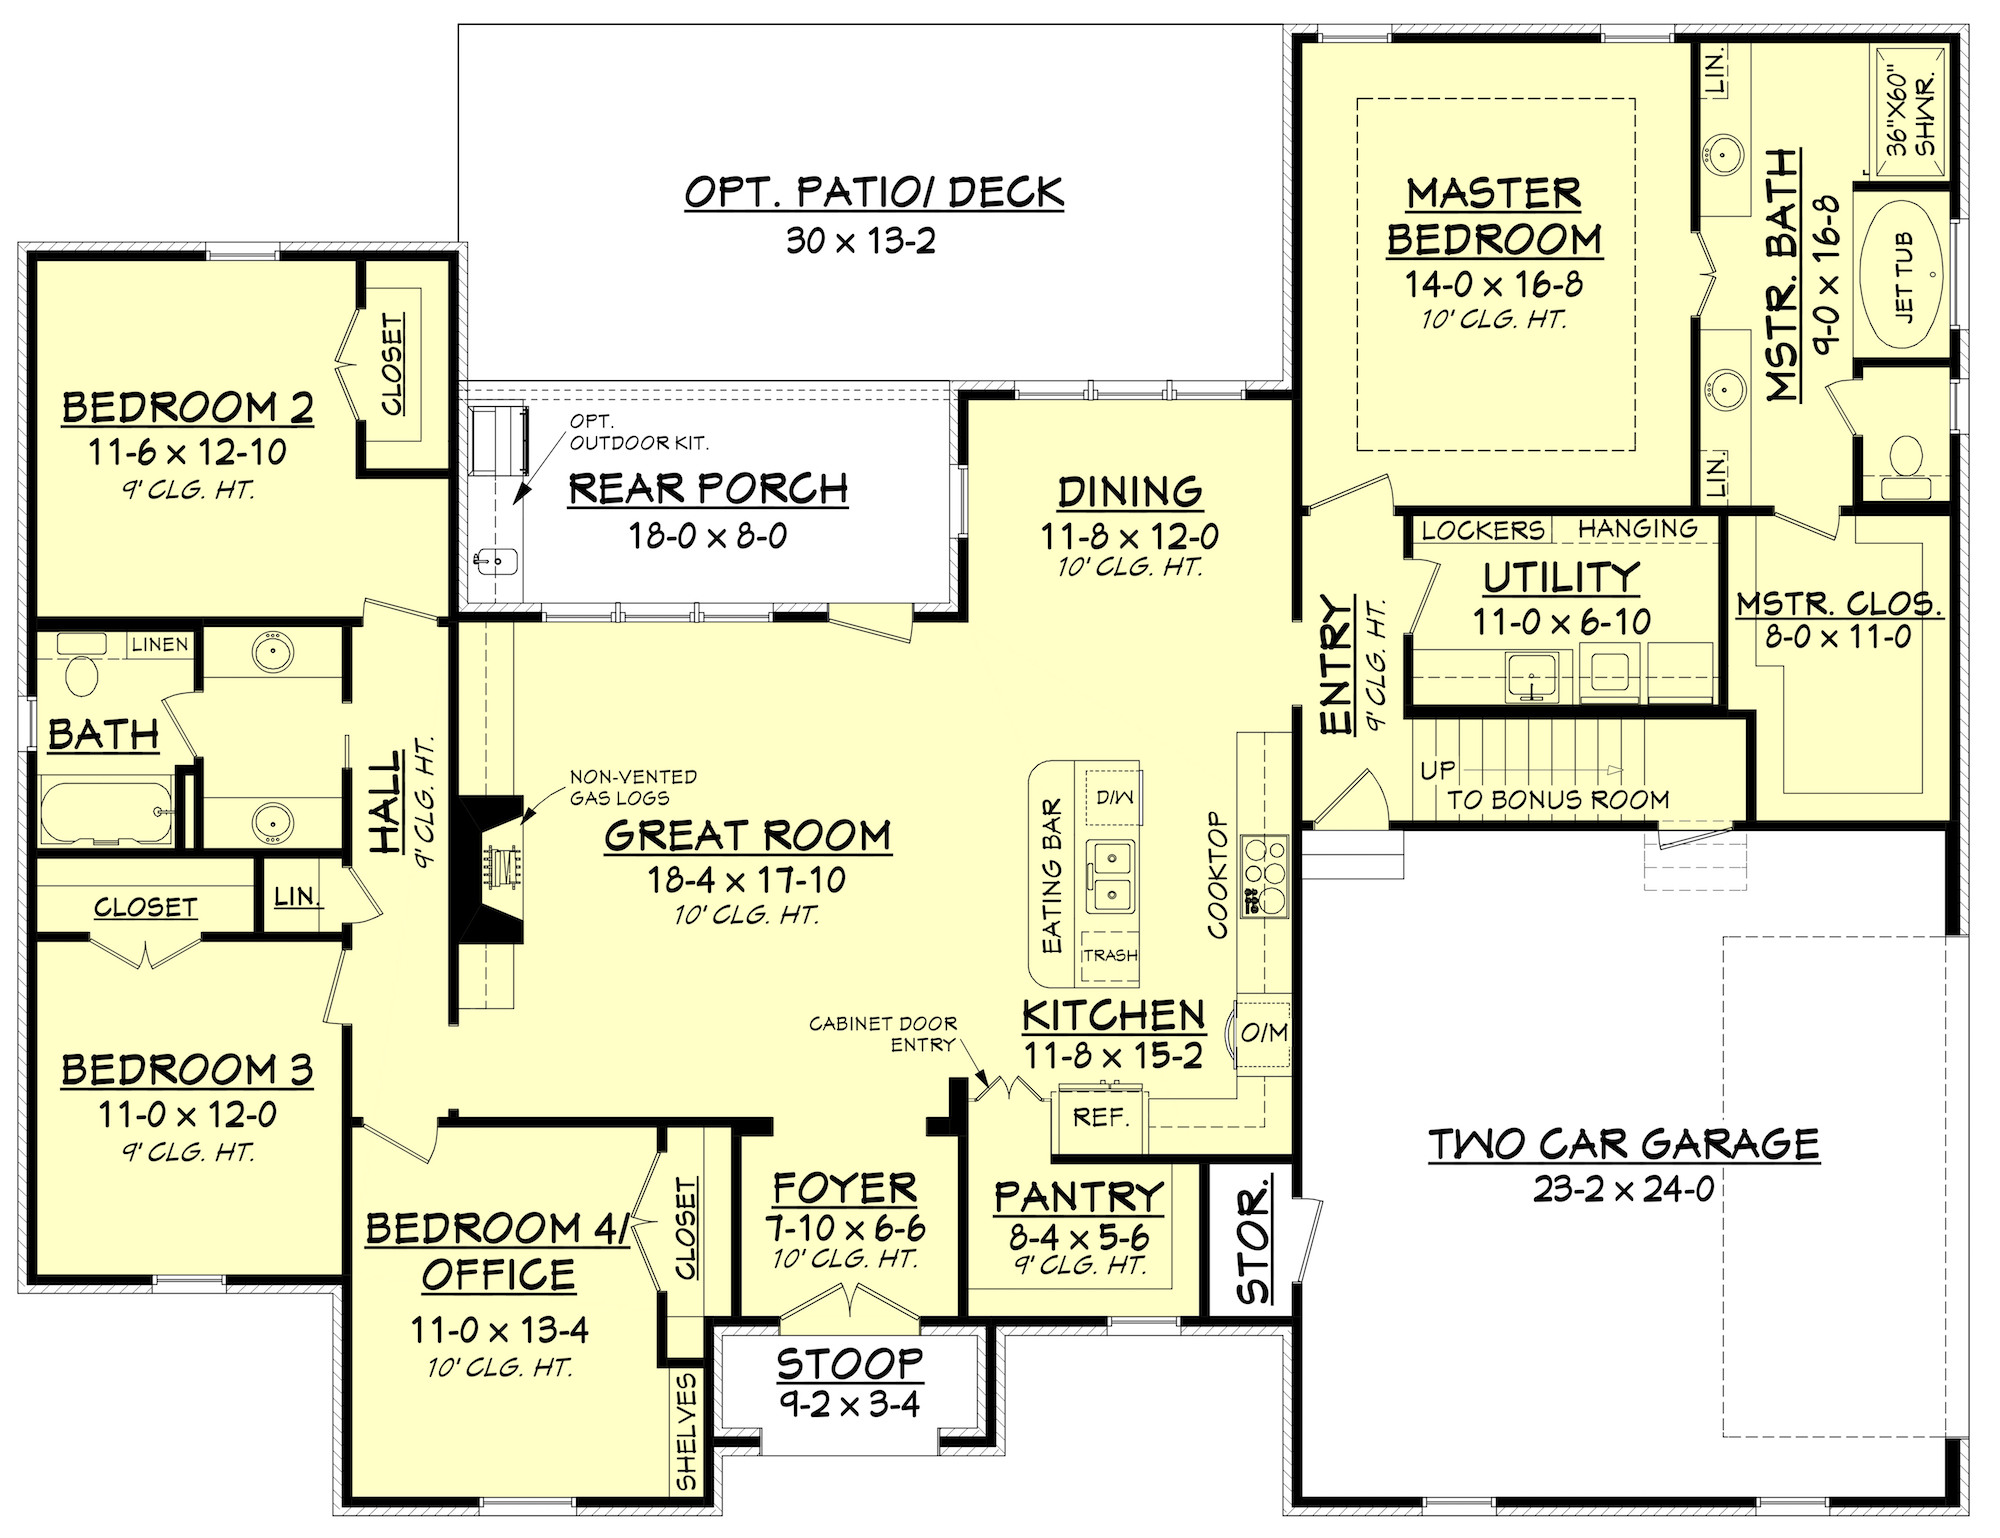 Acadian house plan 142 1154 4 bedrm 2210 sq ft home plan for Lay out house floor plans